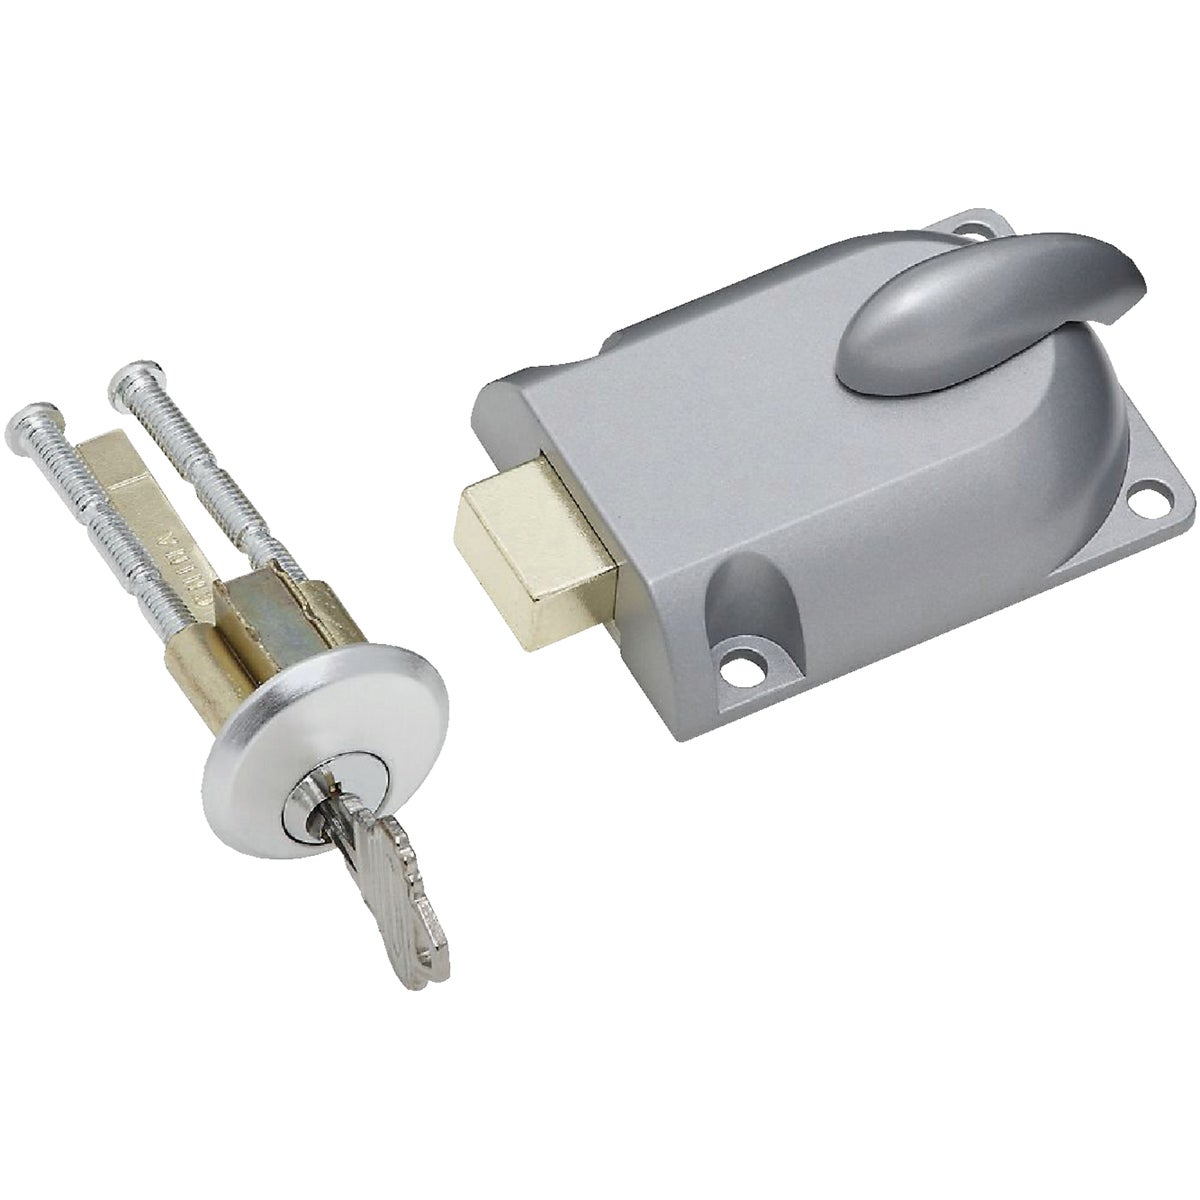 DEAD BOLT LOCK - N280784 by National Mfg Co